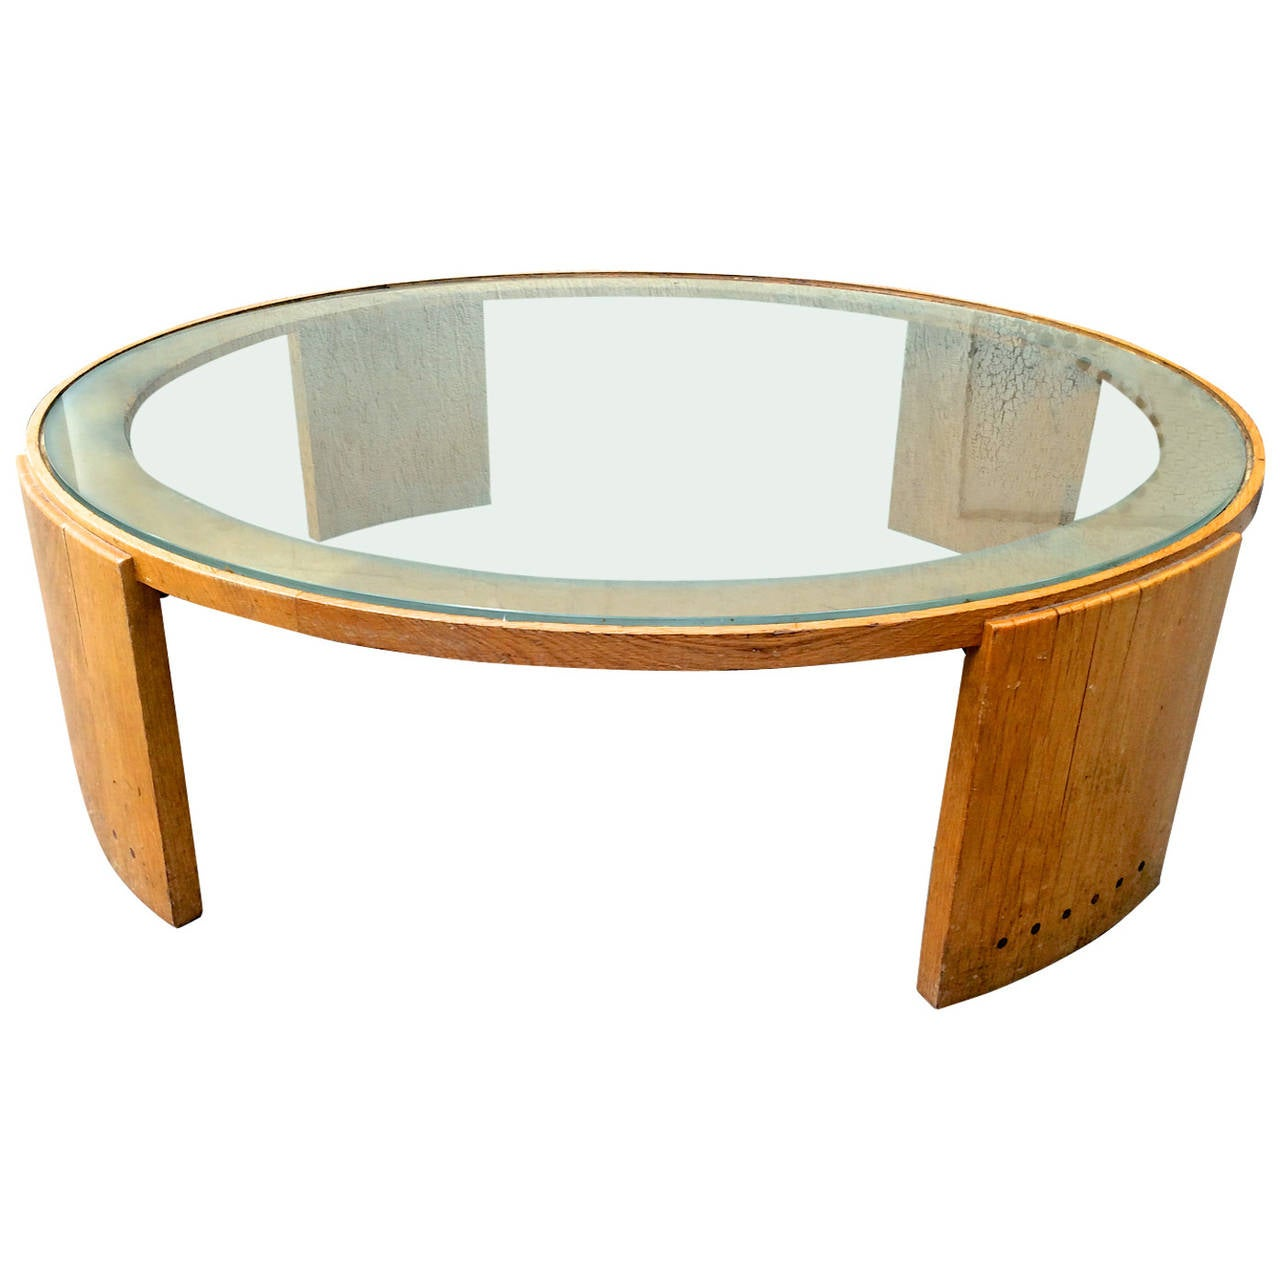 Jacques adnet very large round coffee table in oak and glass top at 1stdibs Coffee tables glass